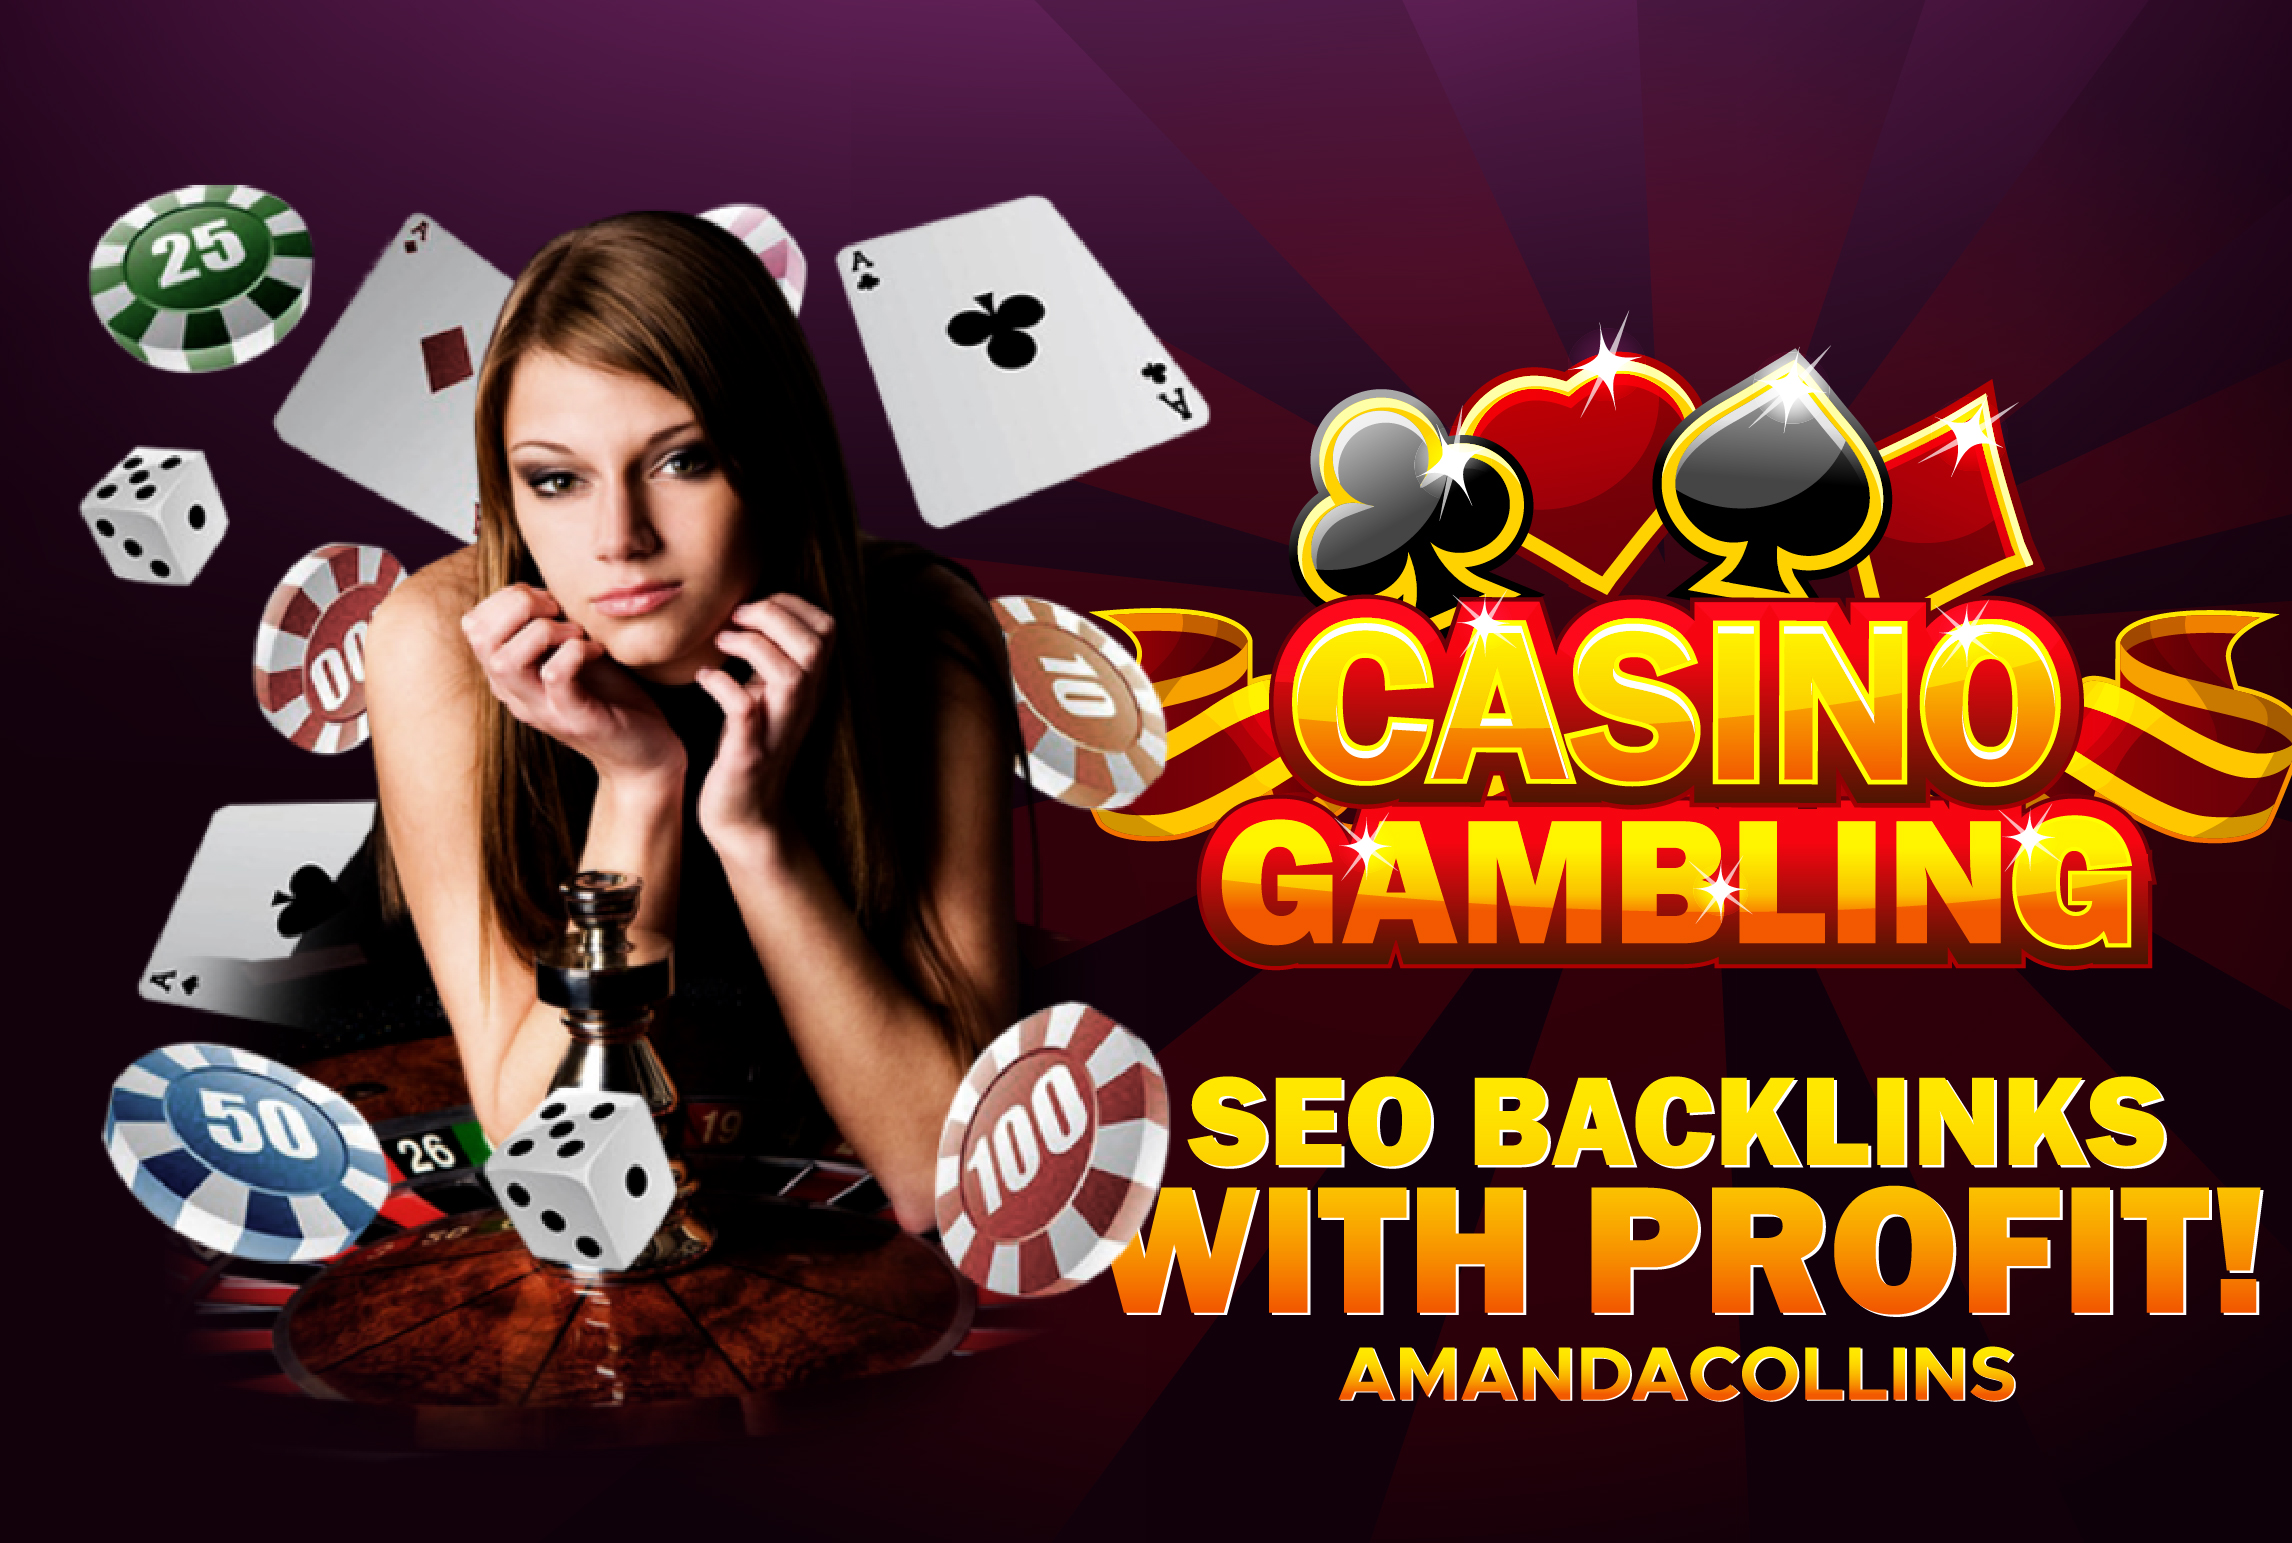 Get Ranked With This SEO Backlinks For Casino Or Gambling Websites